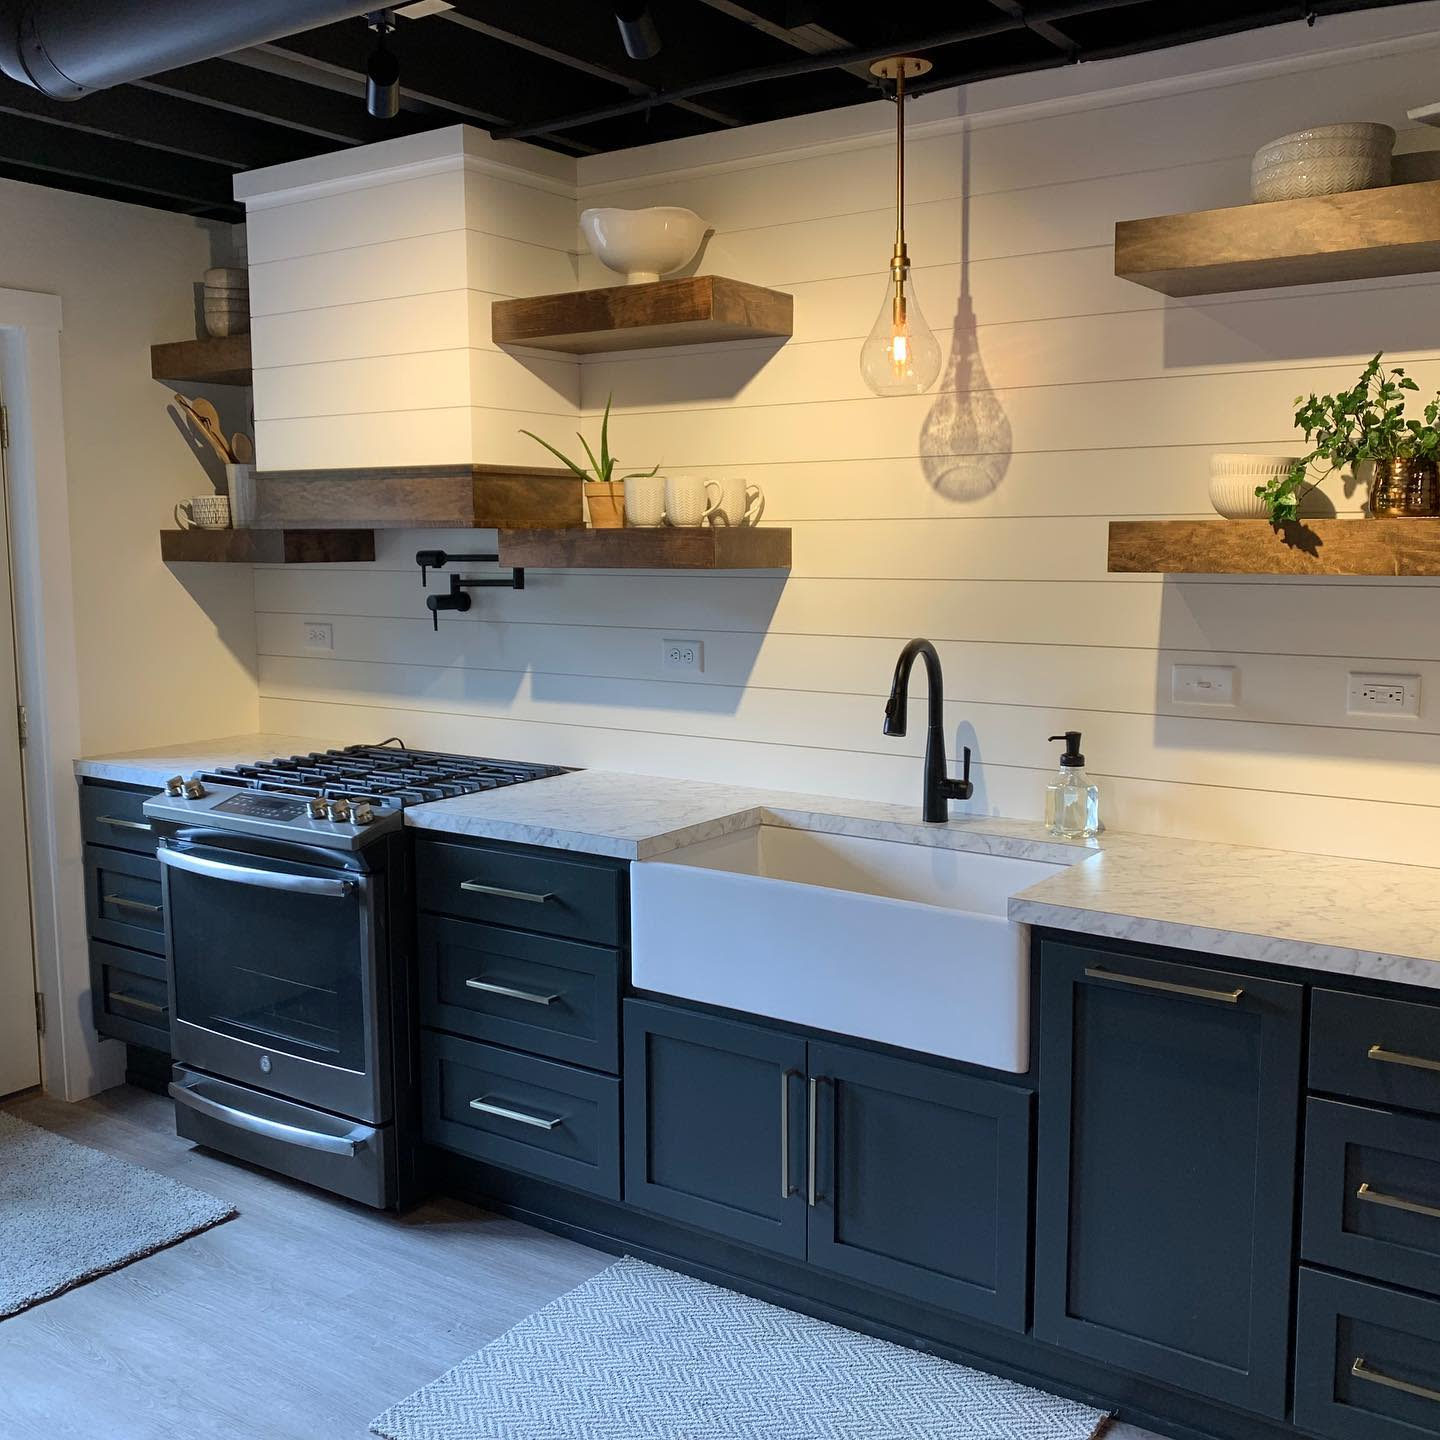 Design Basement Kitchen Ideas -thecarpentershp